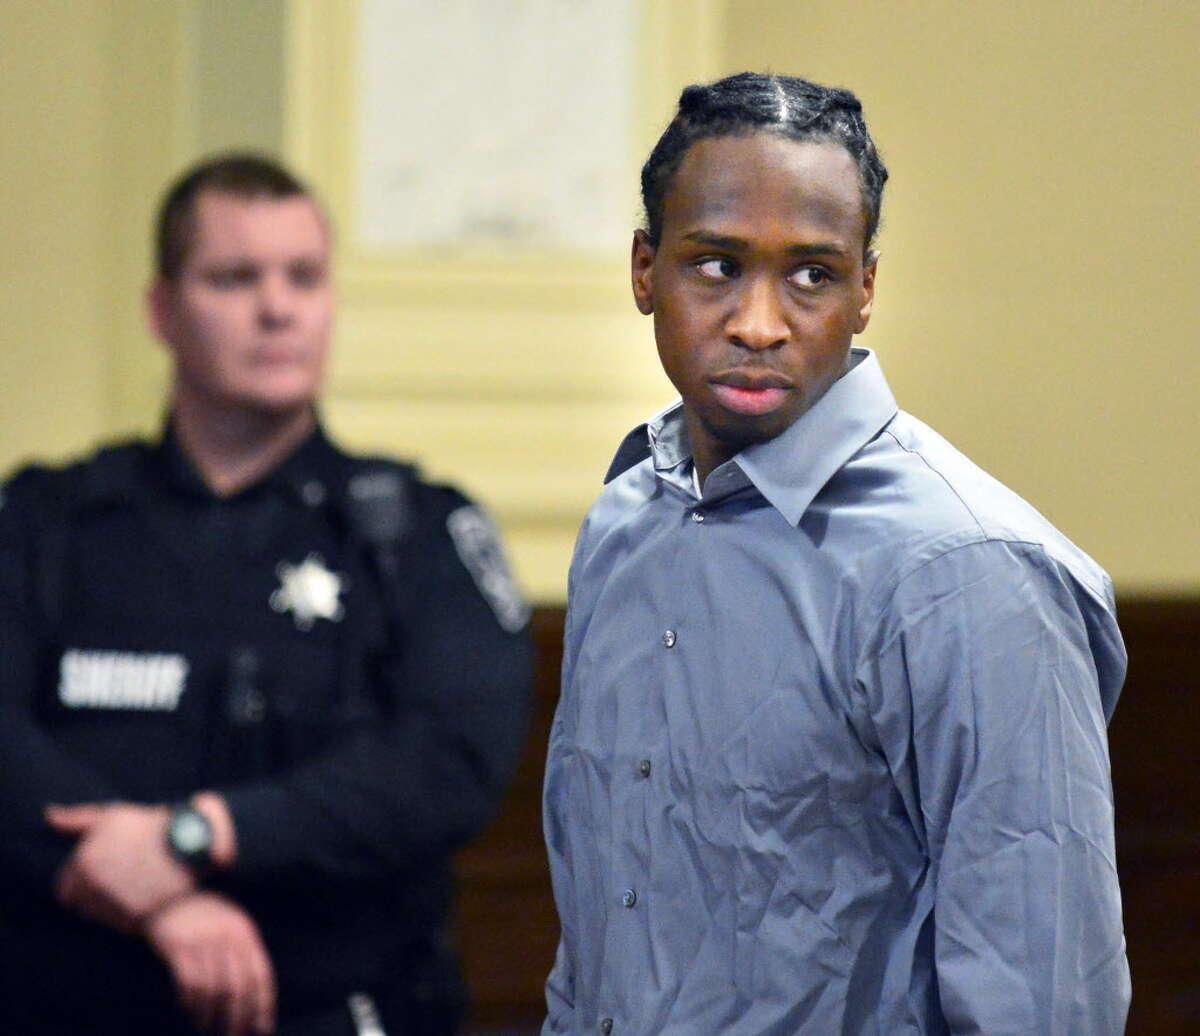 Quintril Clark, 23, of Troy, appears on Dec. 3, 2013, at the Rensselaer County Courthouse in Troy, NY. (John Carl D'Annibale / Times Union archive)